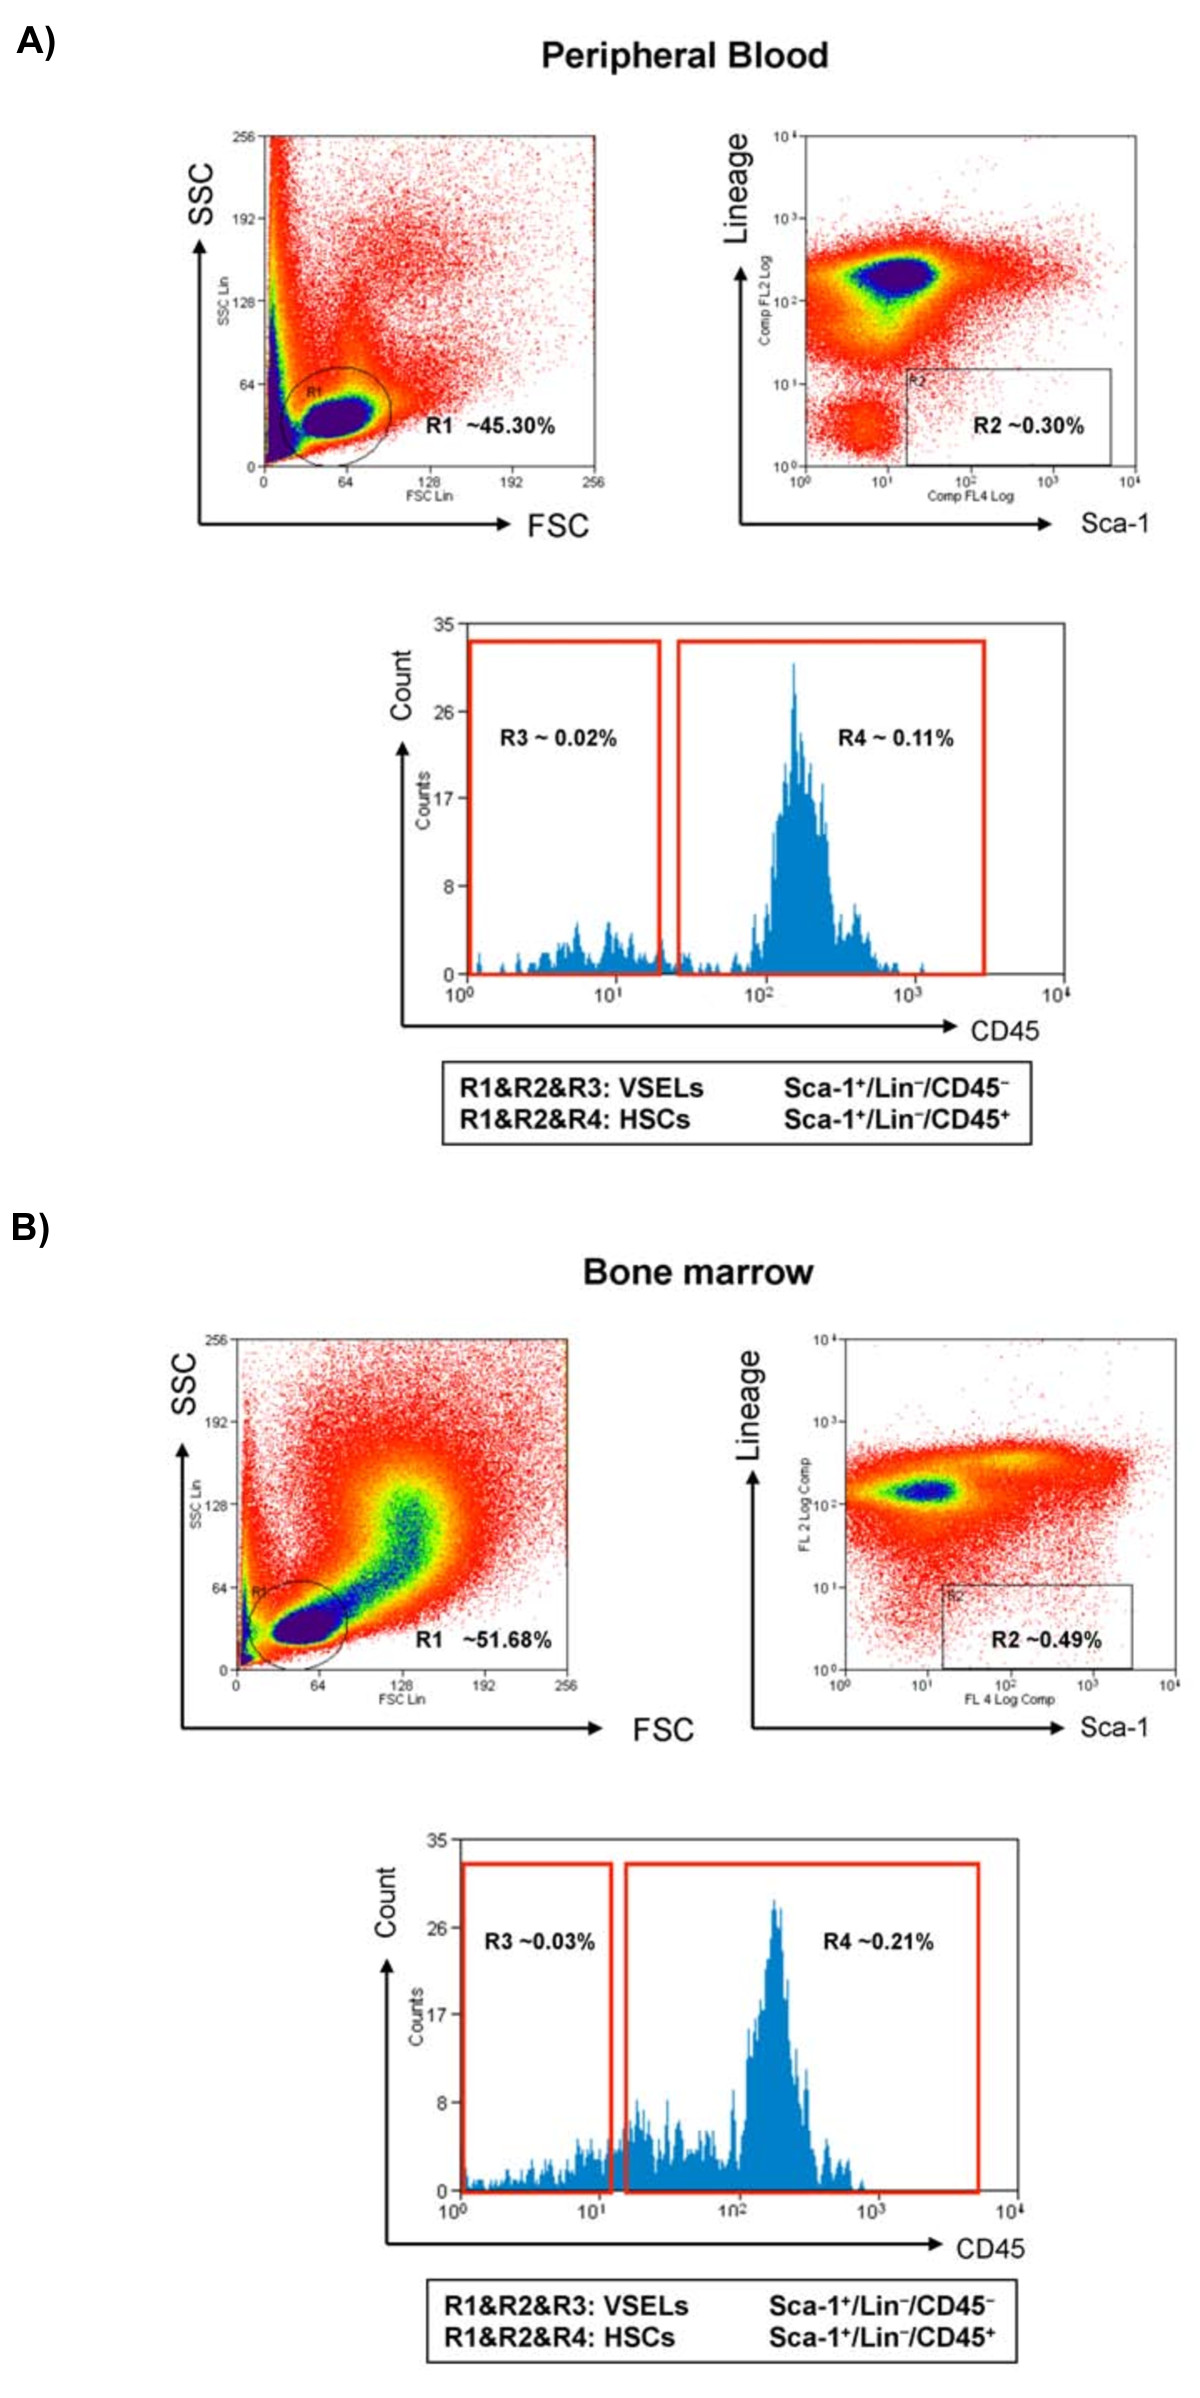 https://static-content.springer.com/image/art%3A10.1186%2F1465-9921-12-63/MediaObjects/12931_2011_1081_Fig1_HTML.jpg